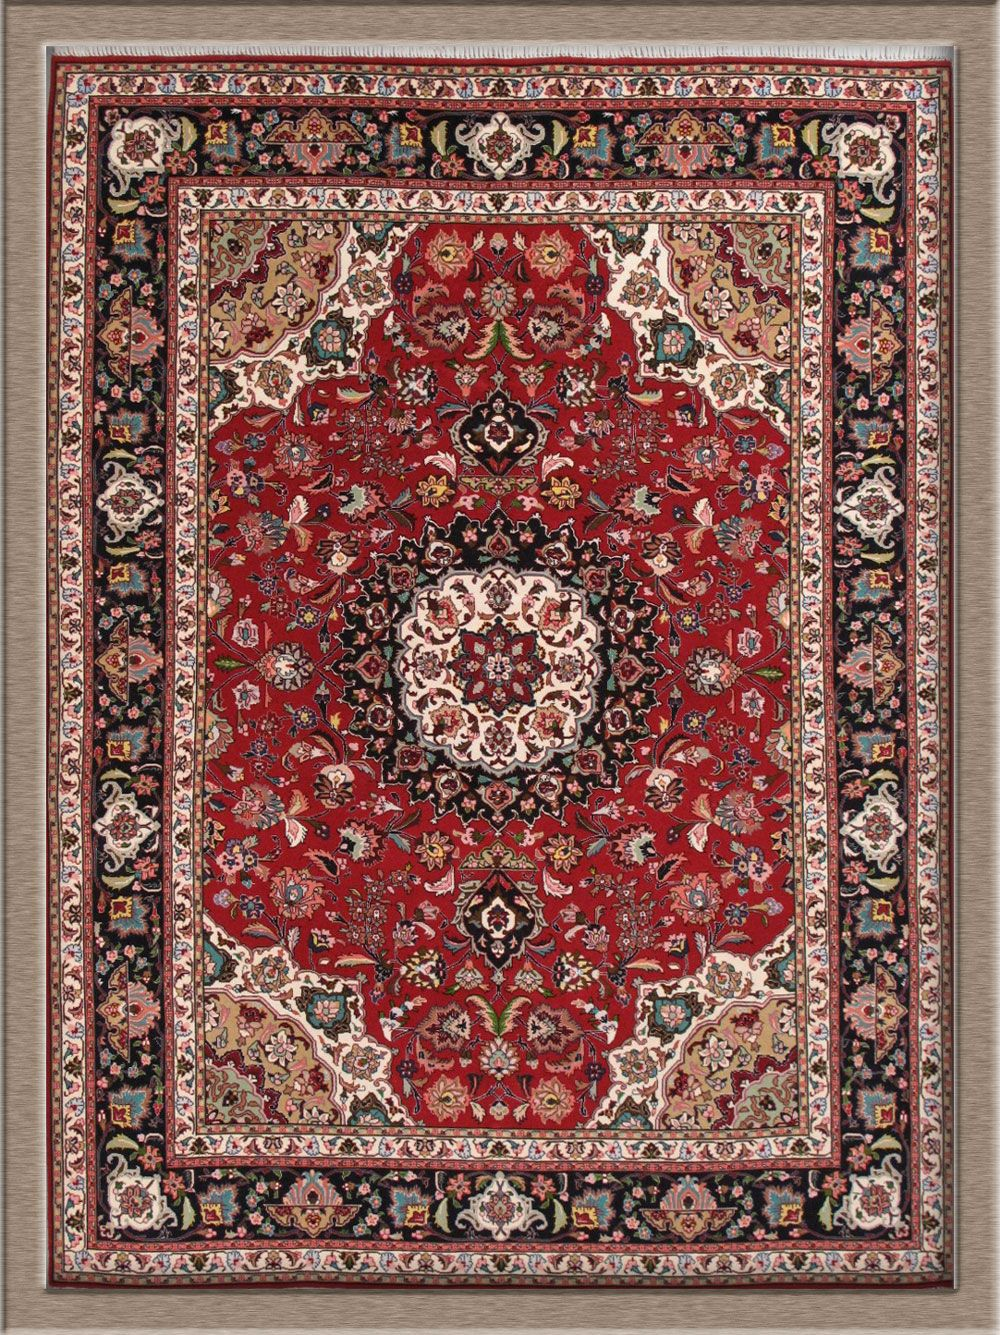 Oriental Rug Texture Inspiration Decorating 36014 Other